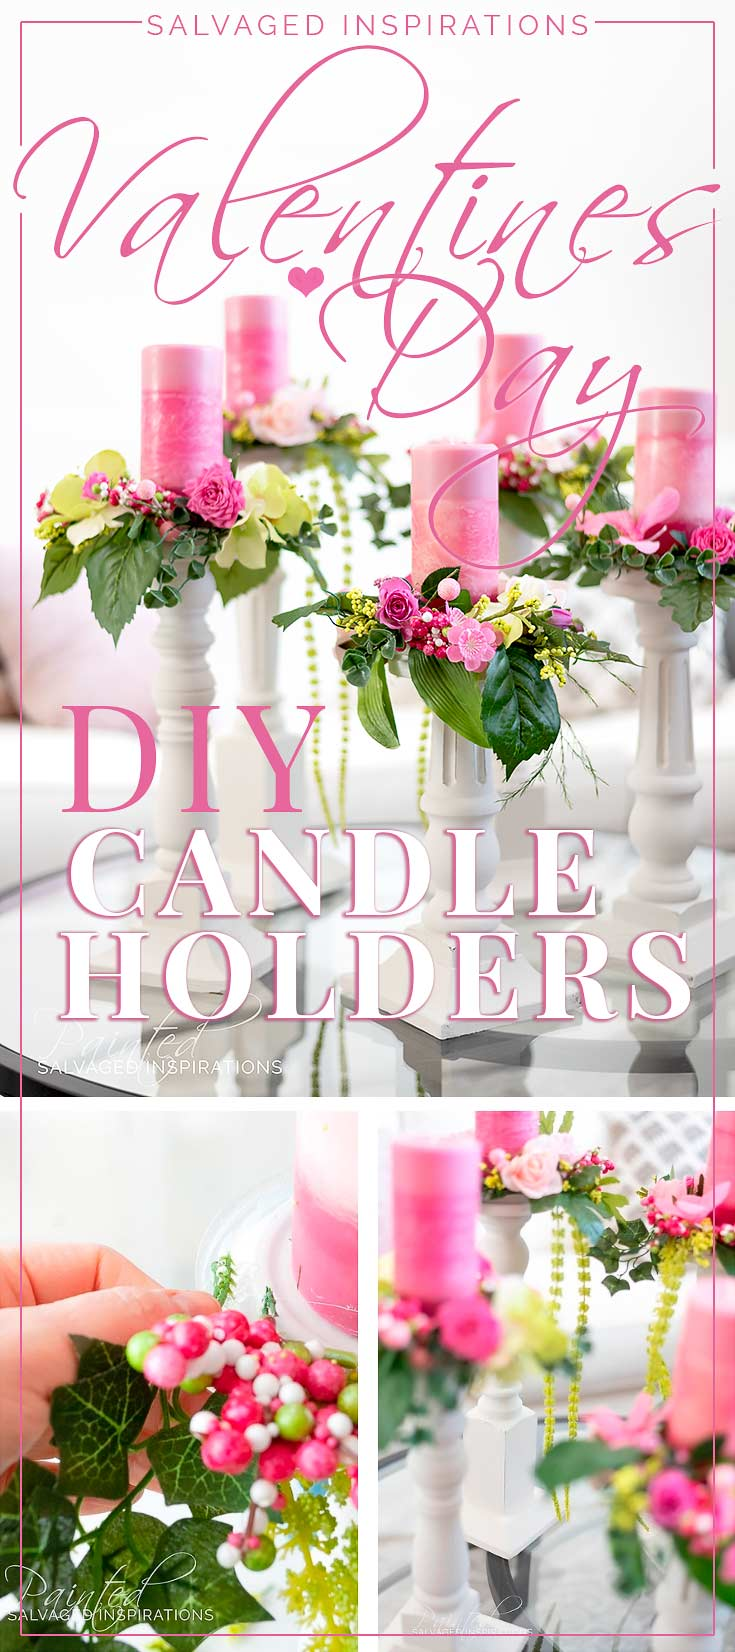 DIY Wooden Candle Holders from Salvaged Chair Legs